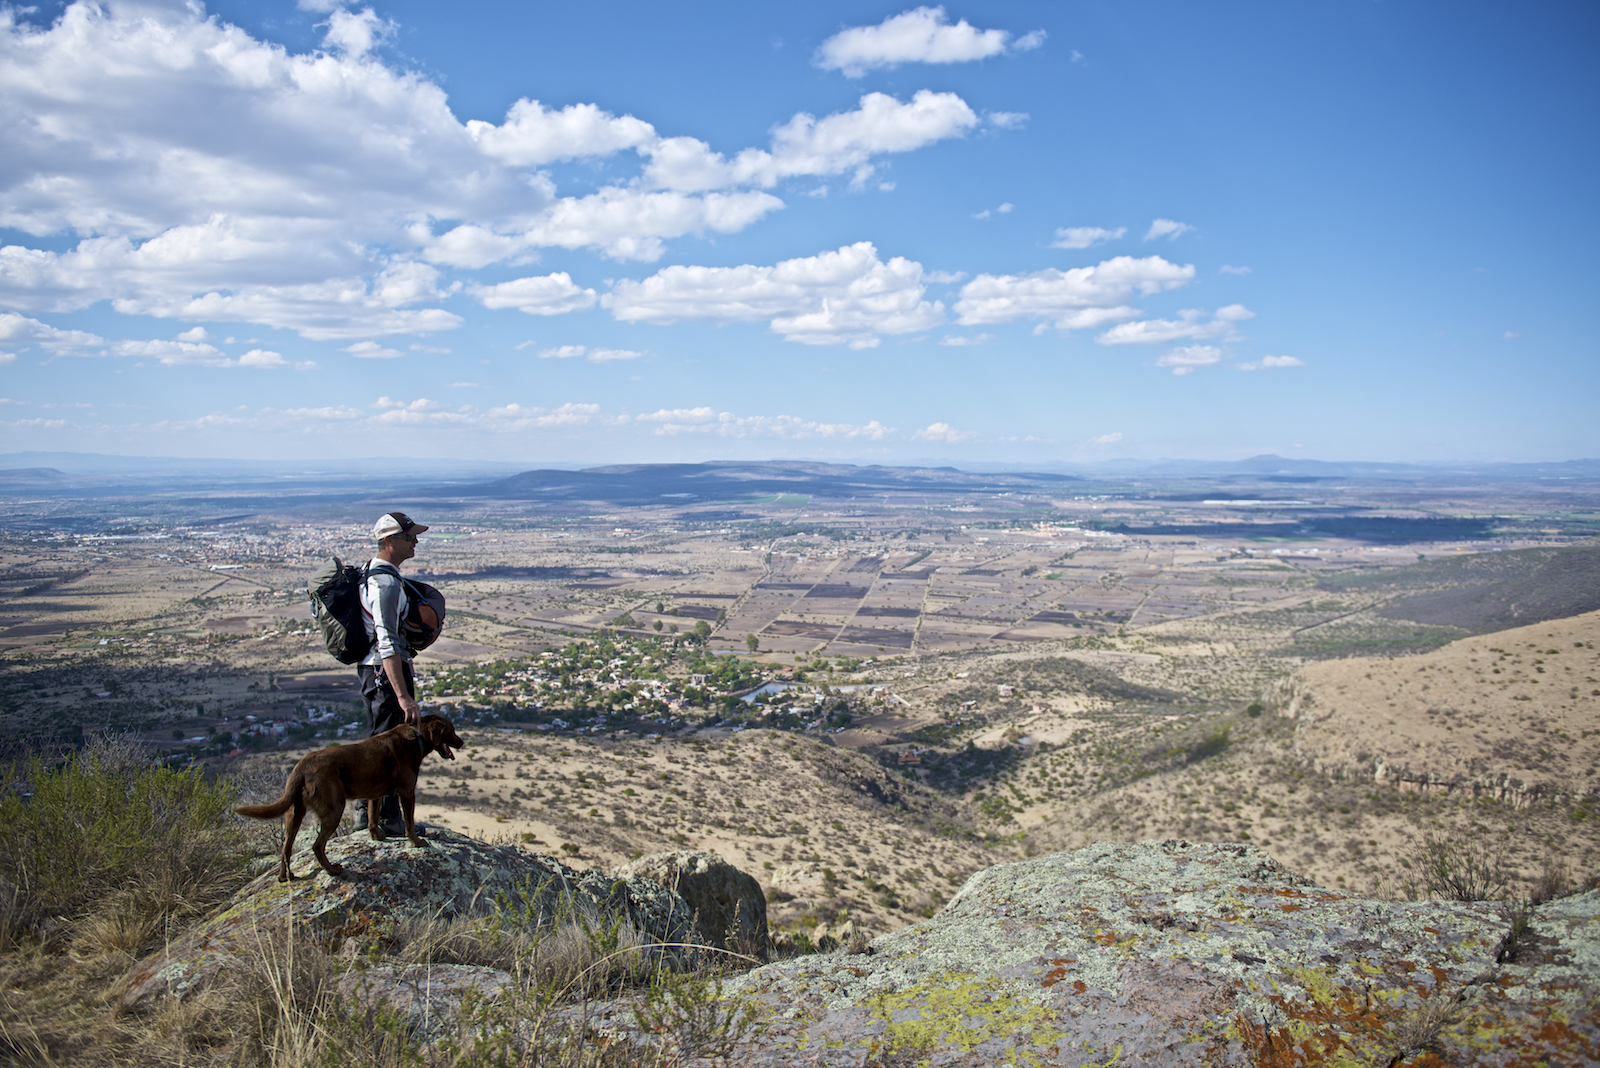 Tom and his dog above San Miguel d'Allende, Mexico.  Image by New Orleans based travel photographer, Marc Pagani